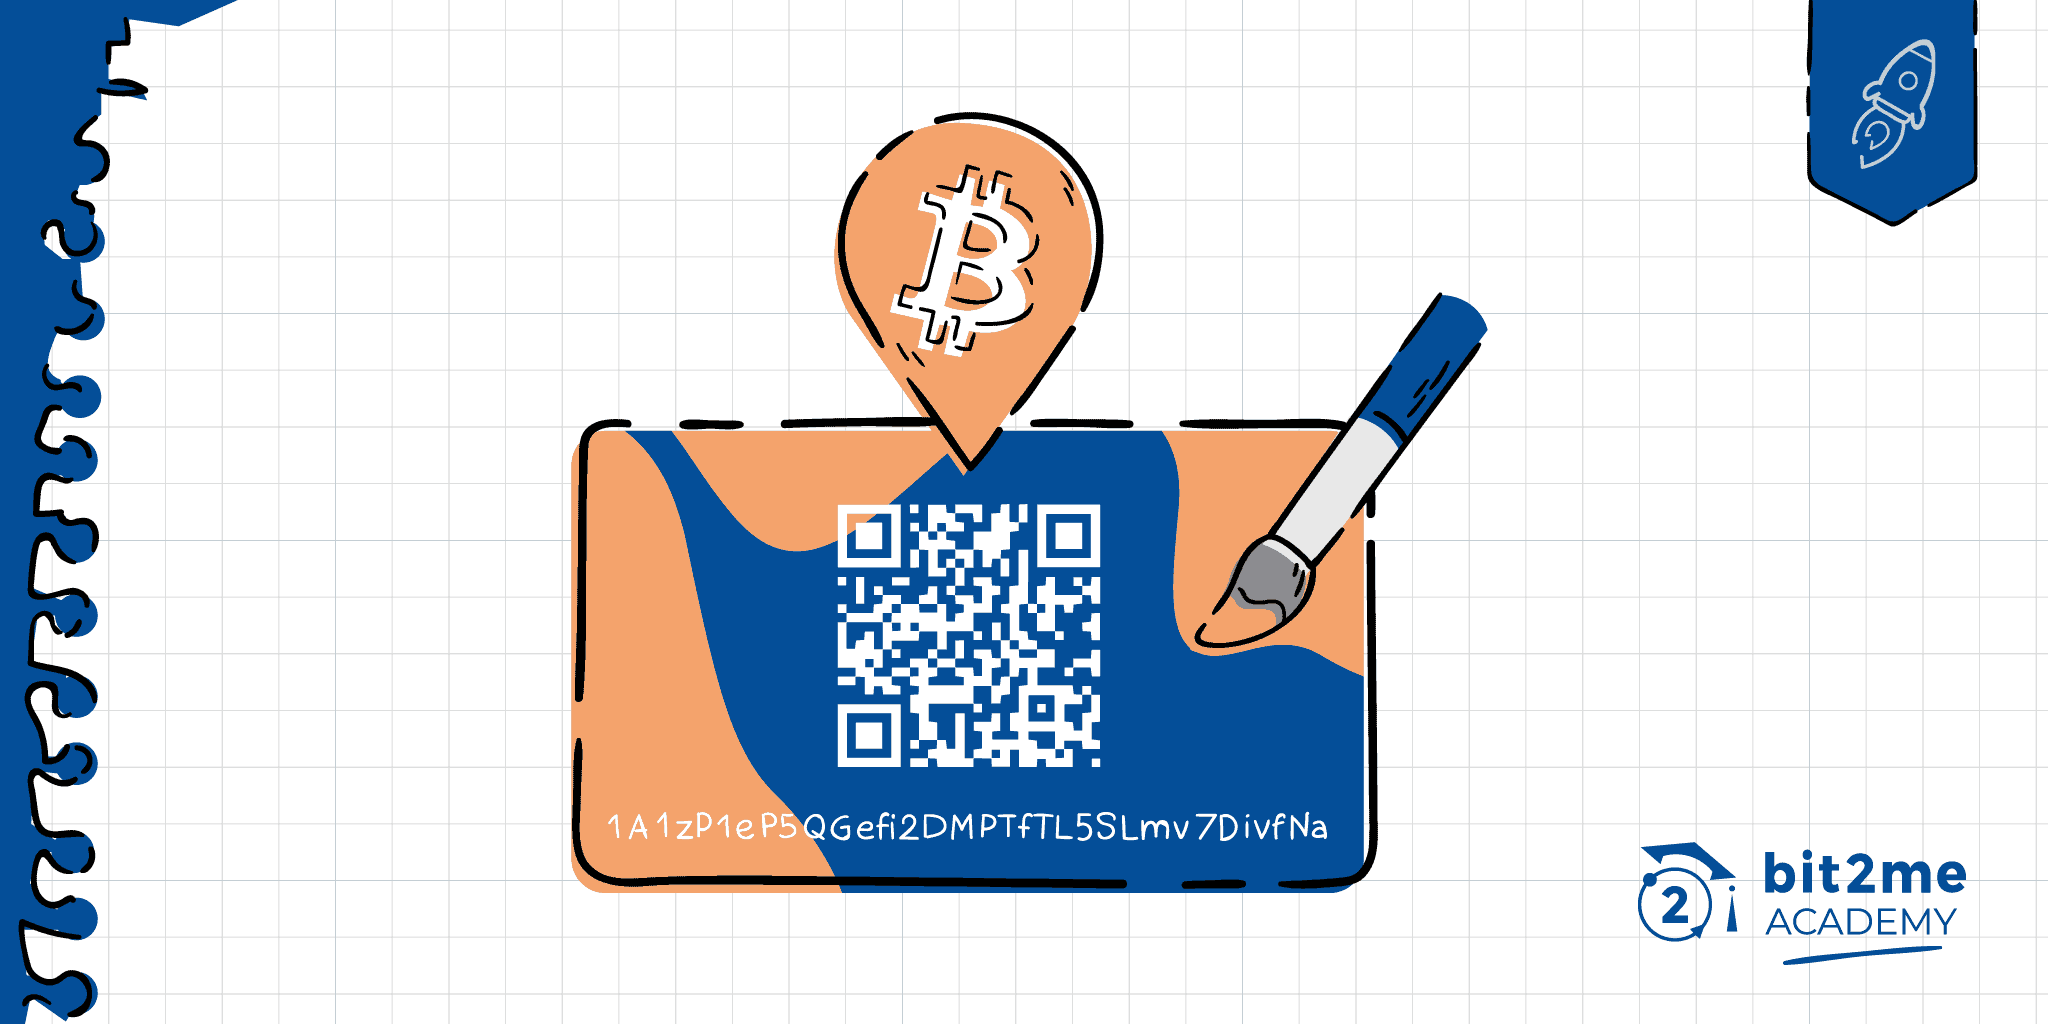 which is cryptocurrency vanity address, which is customizable vanity address